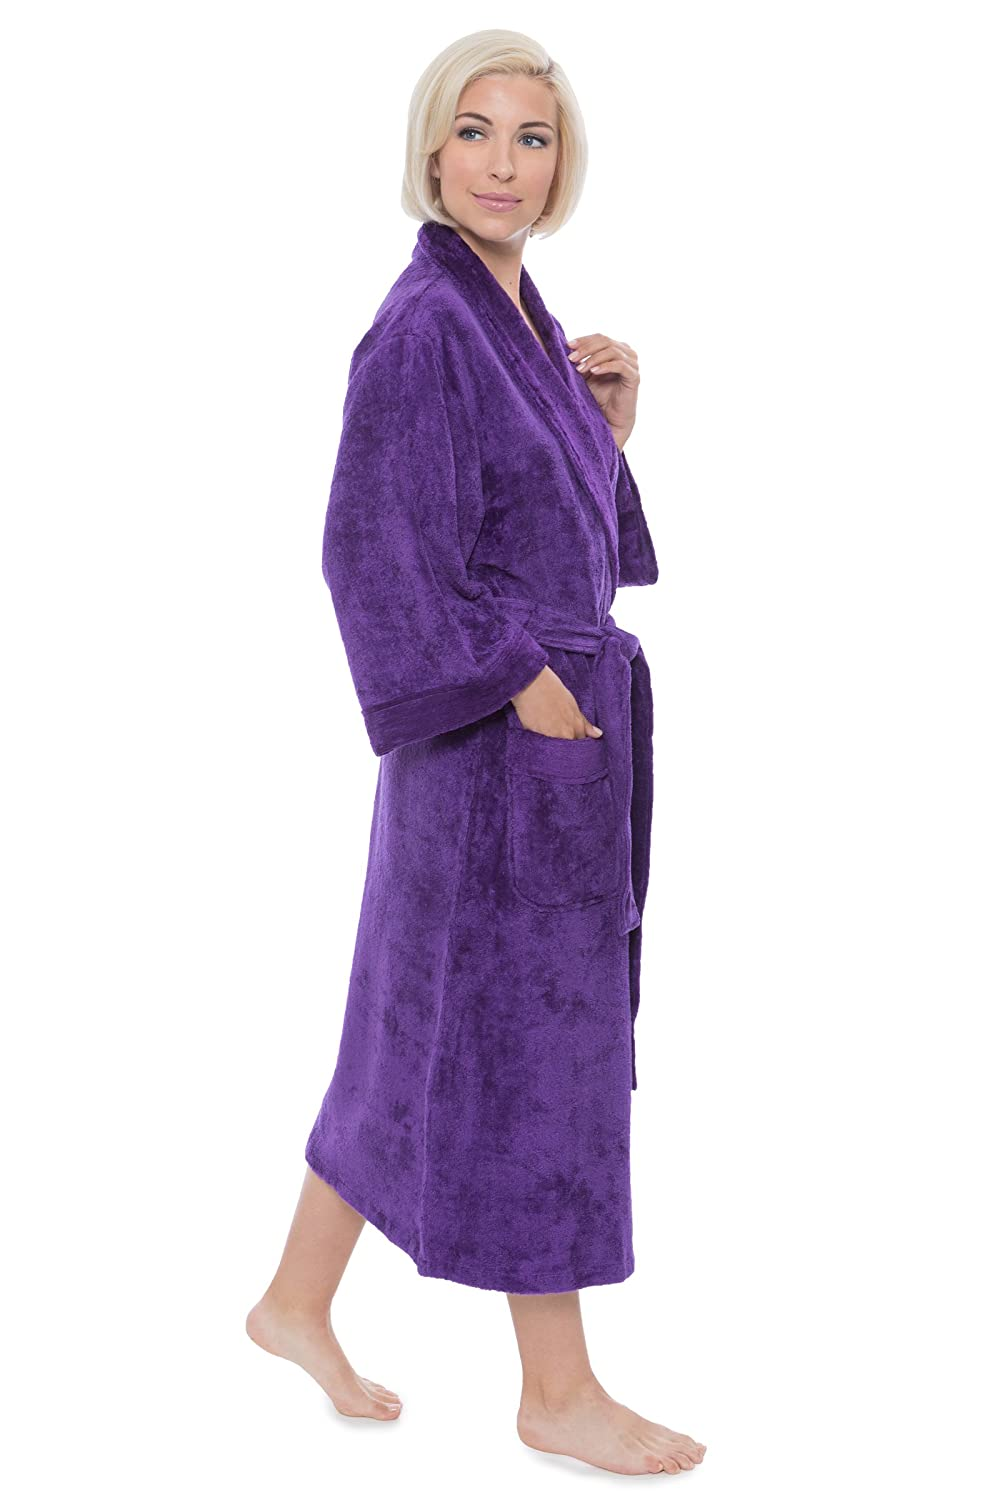 7887c26822 Women s Terry Cloth Bath Robe - Luxury Comfy Robes by Texere (Sitkimono) at Amazon  Women s Clothing store